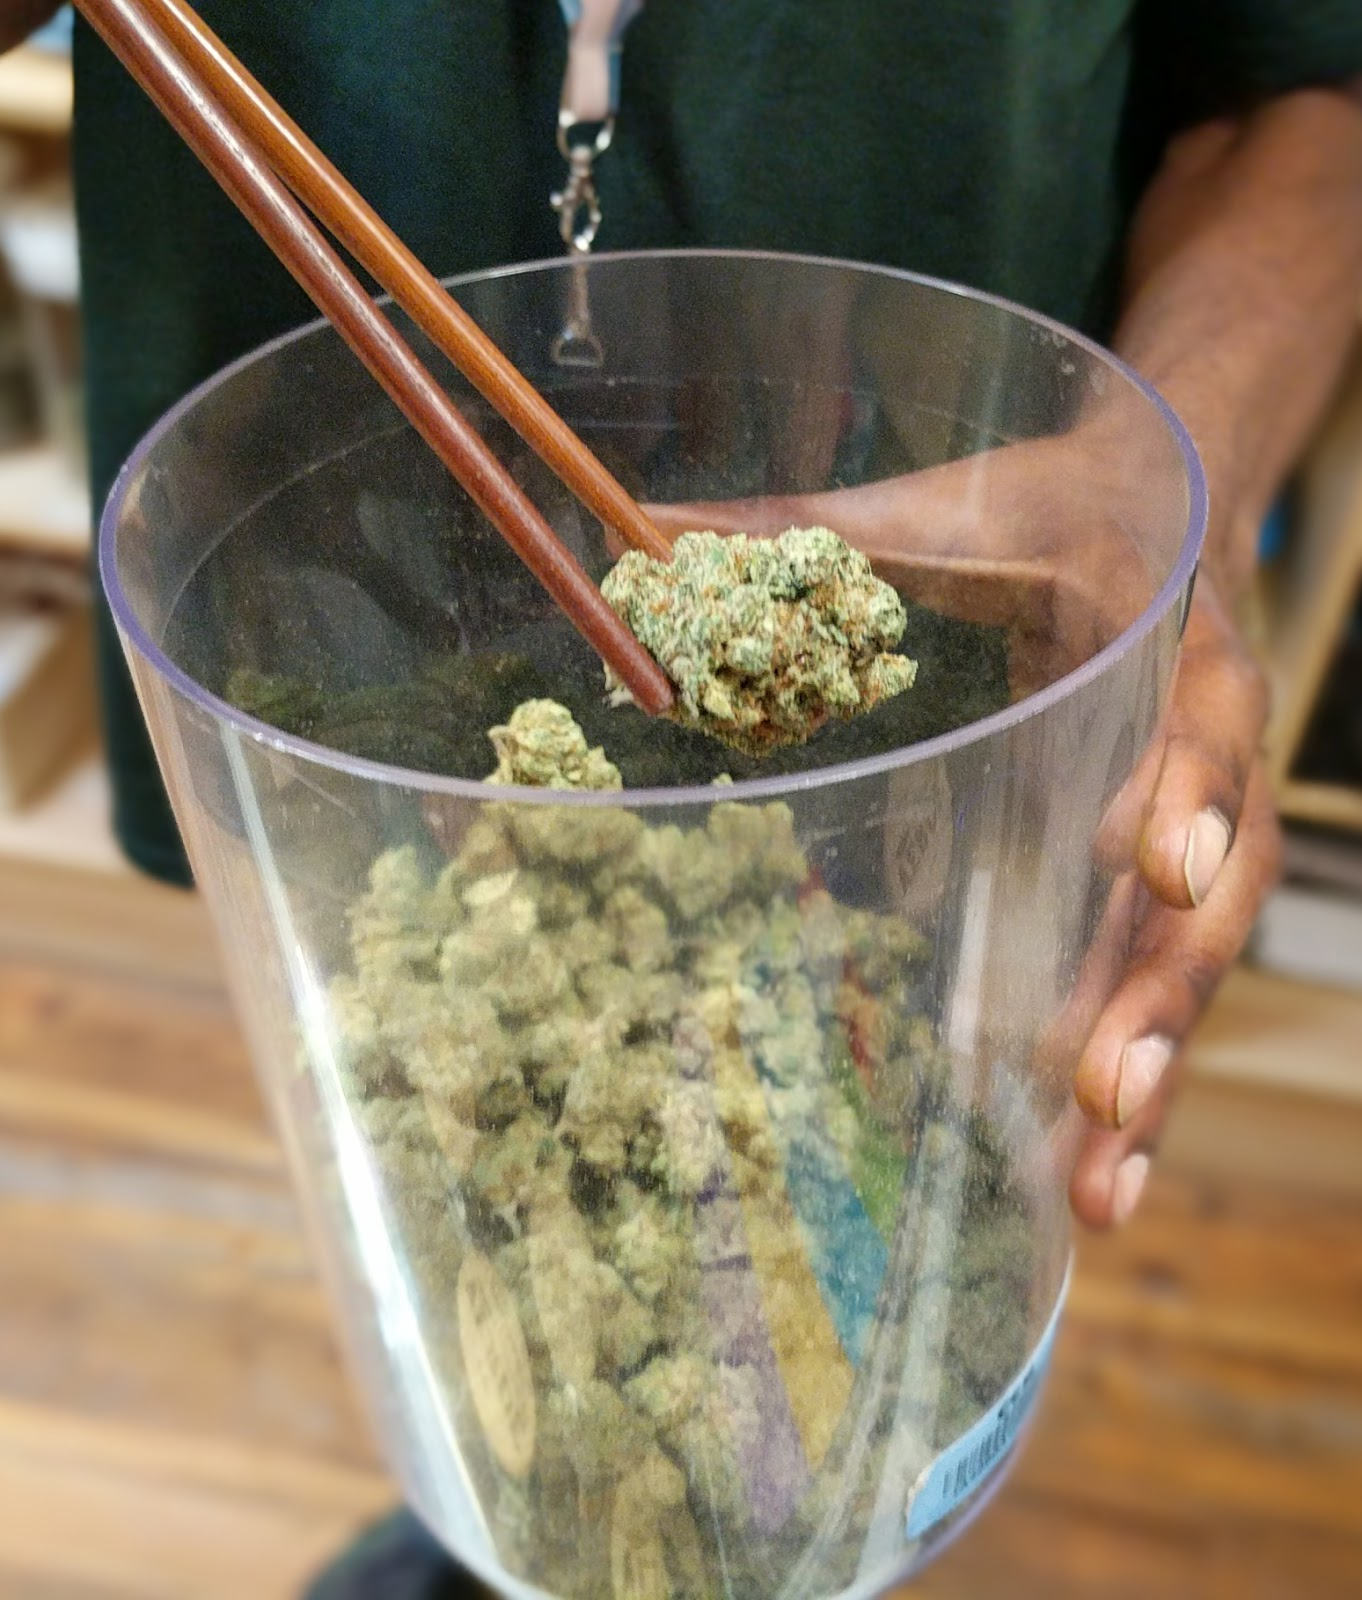 a bud at a dispensary being shown as you might see if you were to purchase legal cannabis to manage your anxiety.